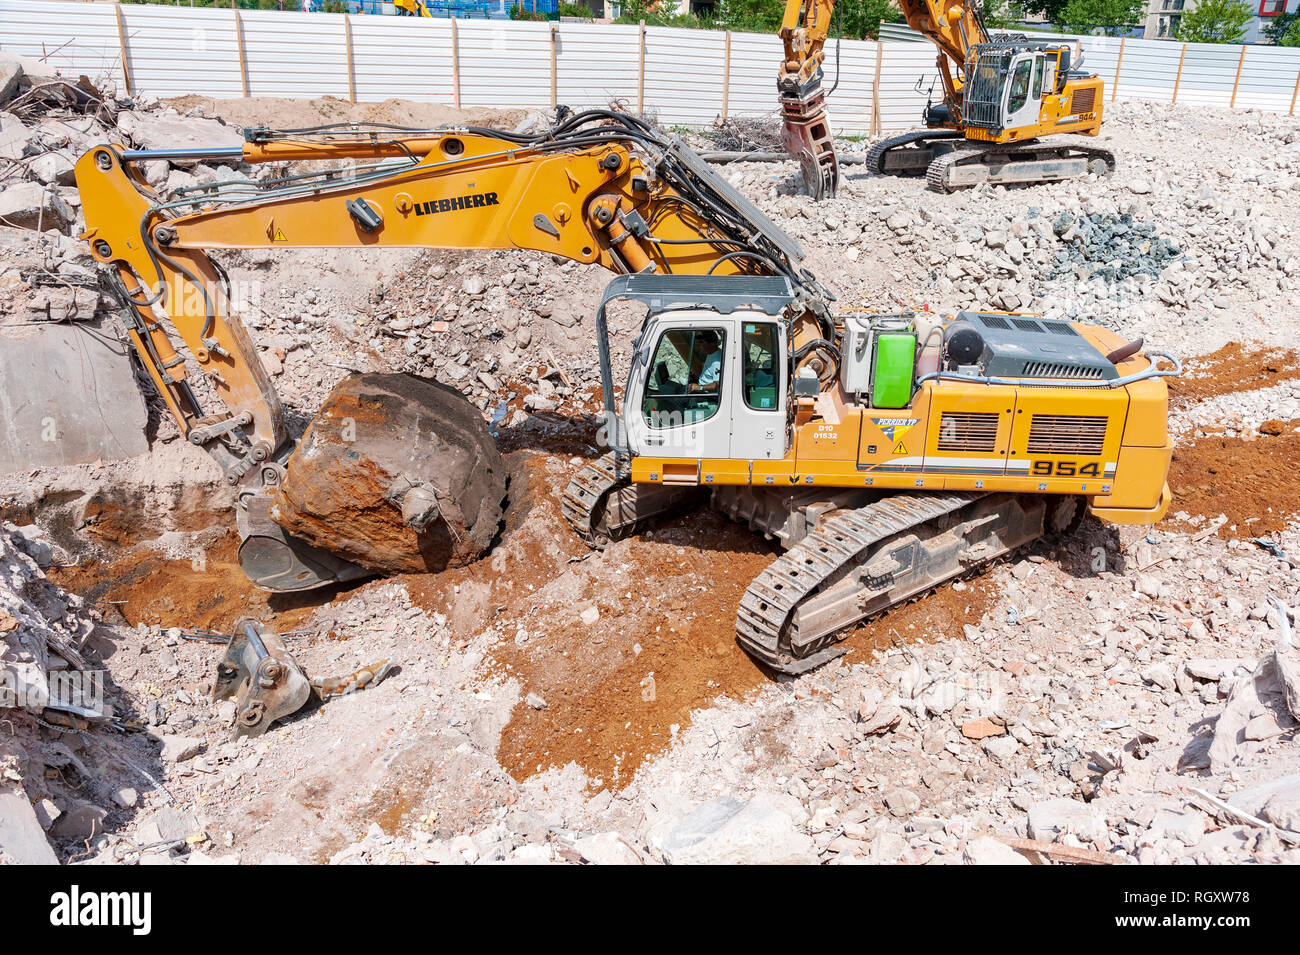 Deconstruction site. A Liebherr 954 excavator, with a bucket , extracts a large block of concrete leftover from the foundations of a building. - Stock Image